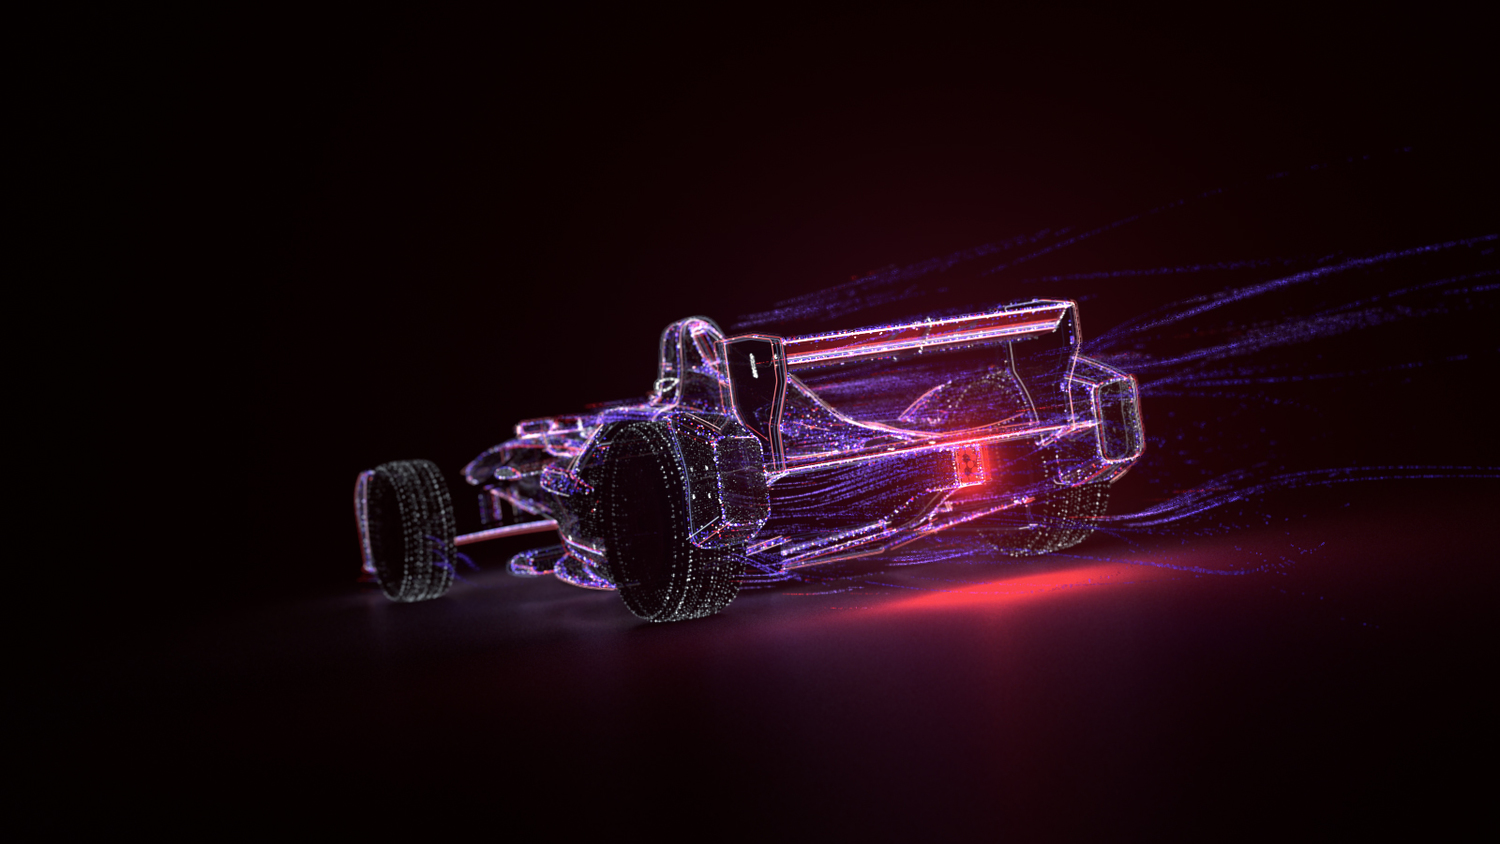 Stylized version of the Formula E made with 3D particles and glowing trails